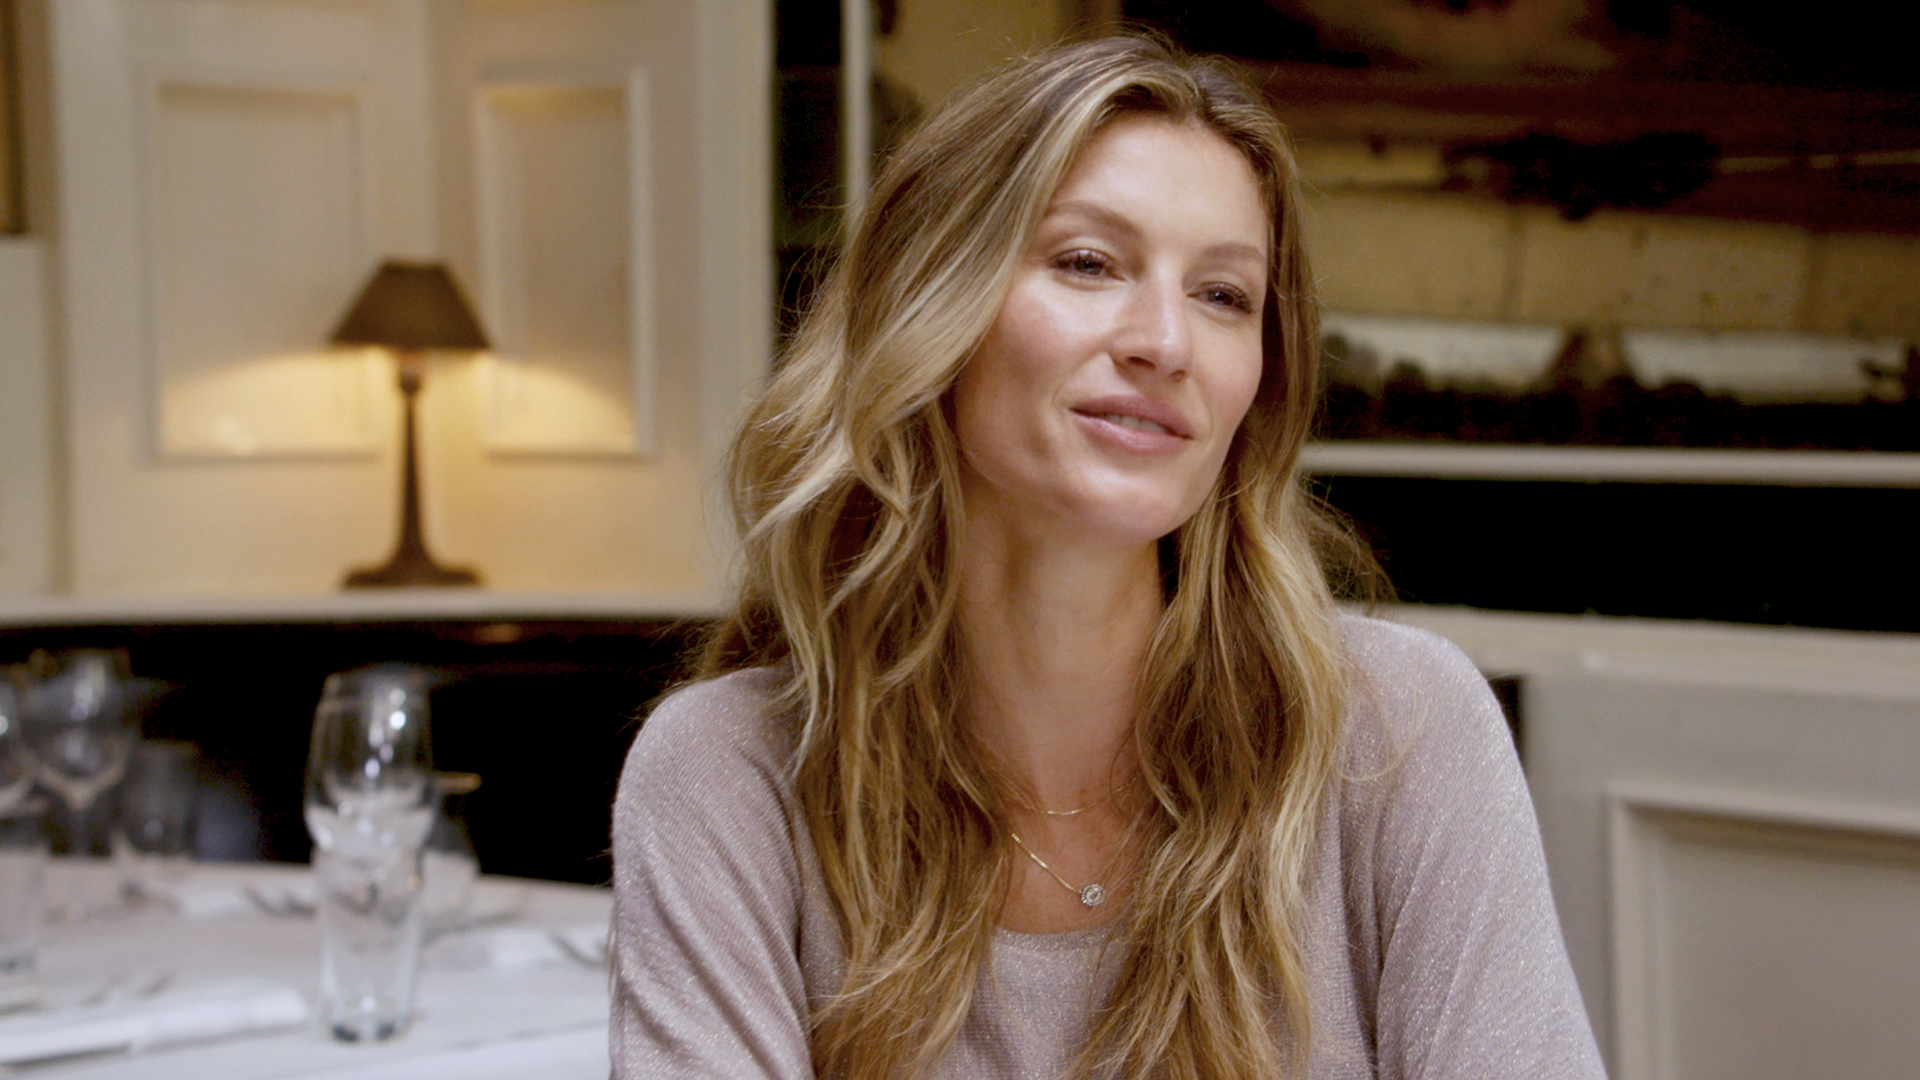 GISELE BÜNDCHEN at the beatrice